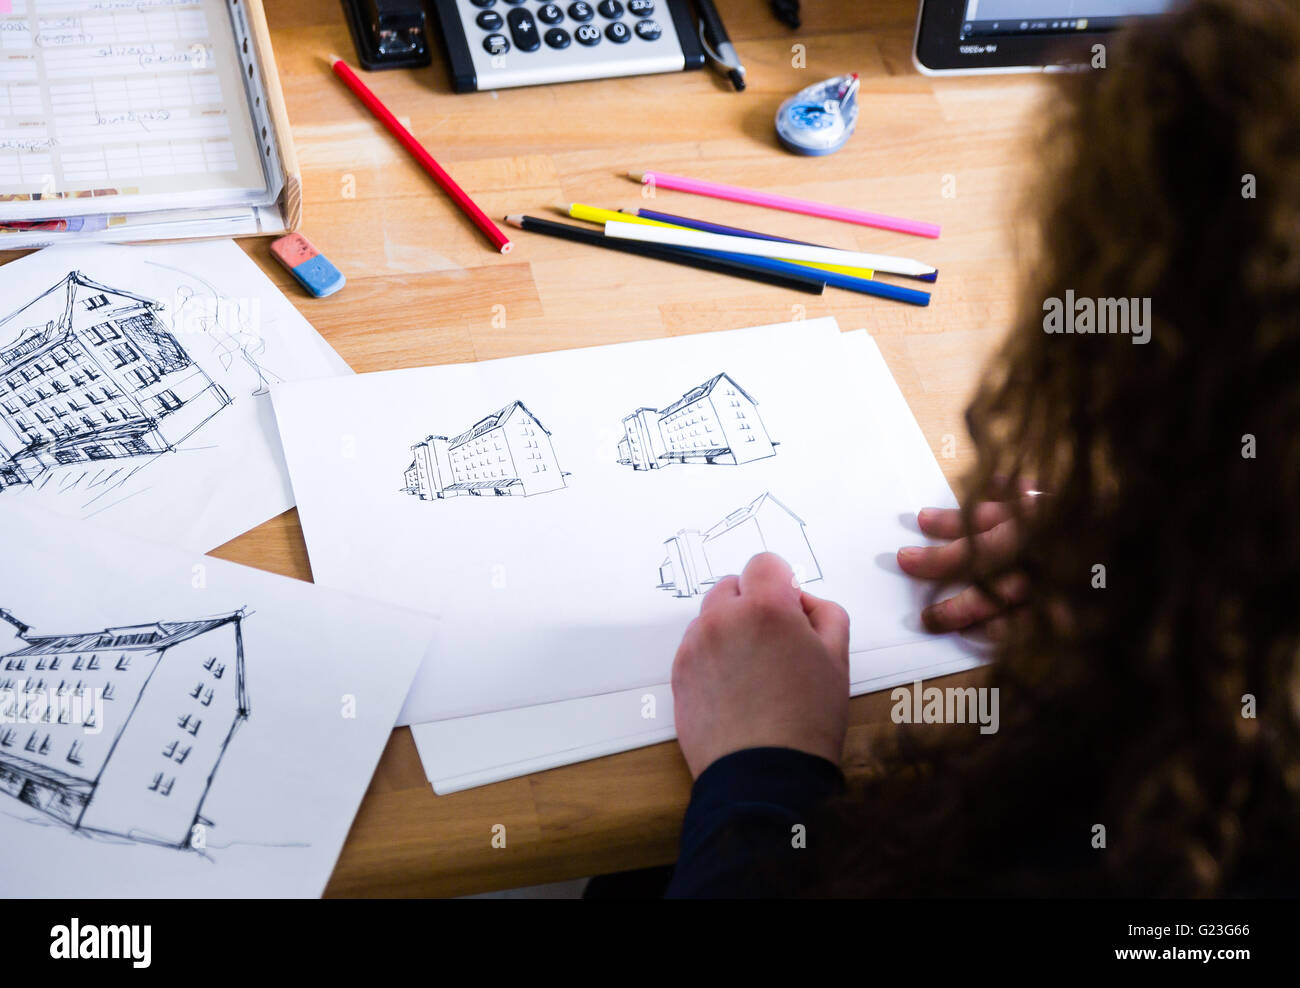 Graphic designer drawing - Stock Image